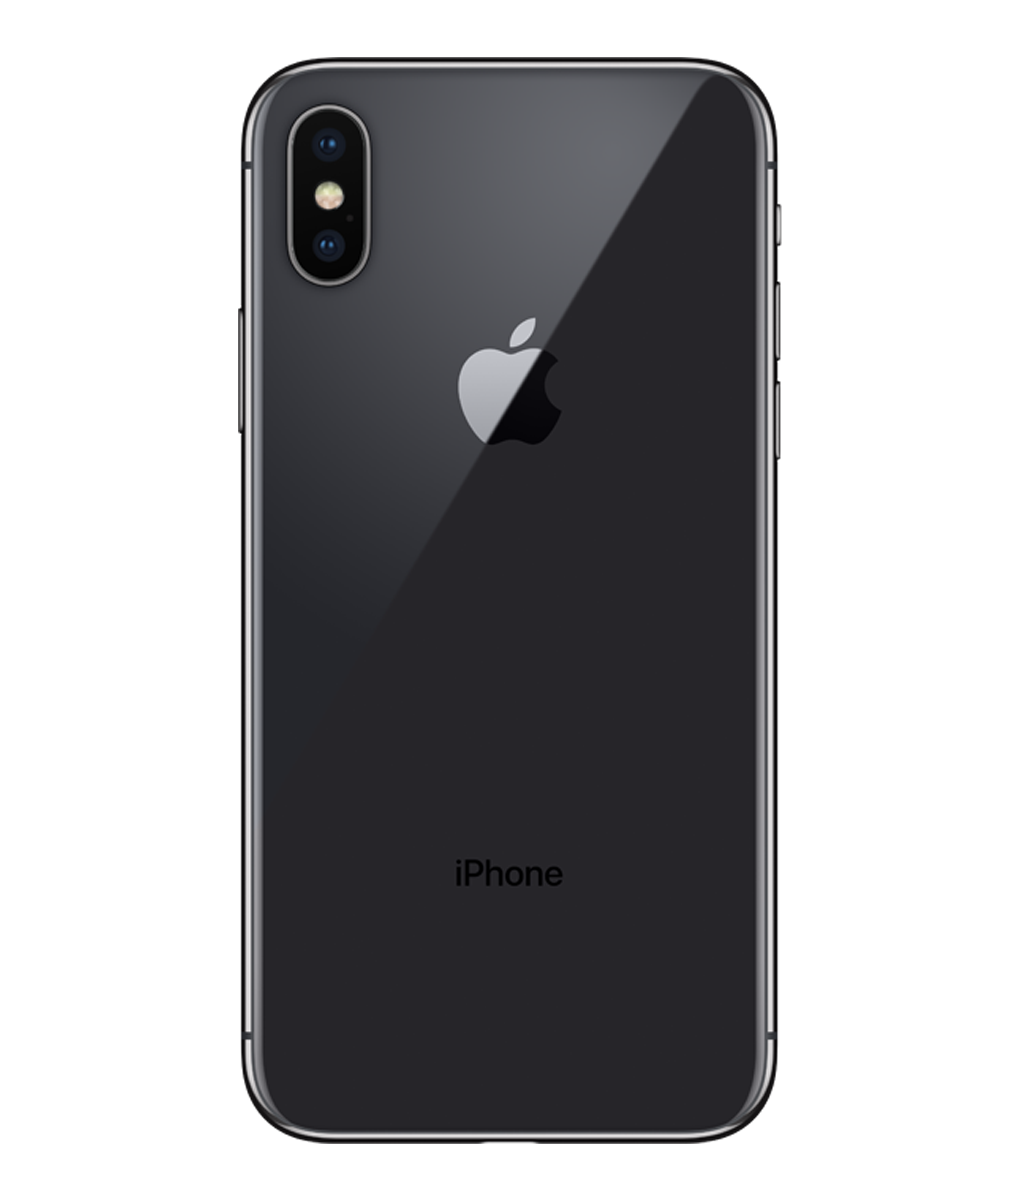 Iphone x png image. Apple at bolt mobile